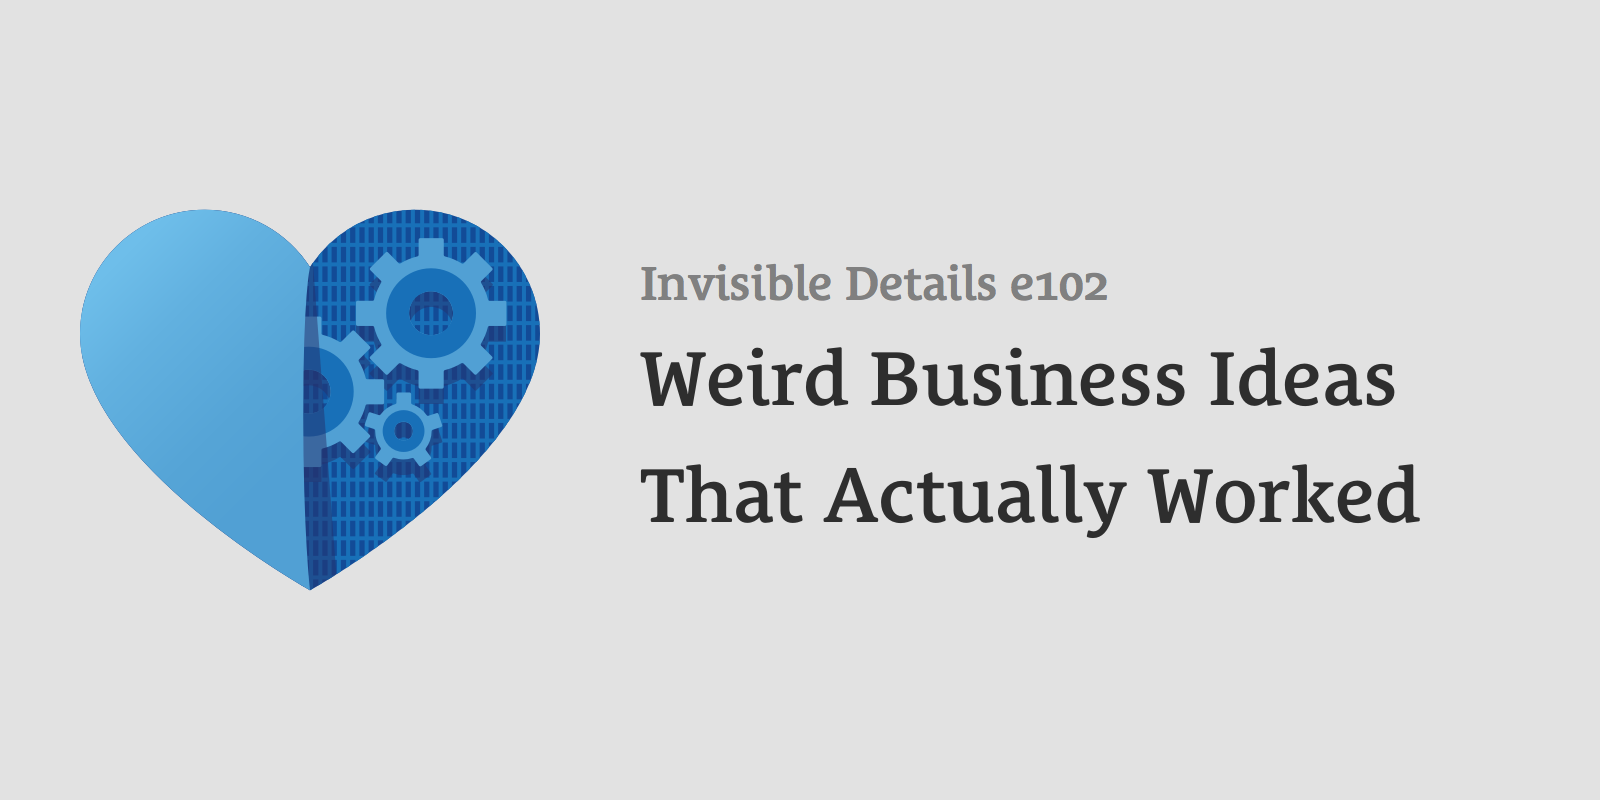 Weird Business Ideas That Actually Worked